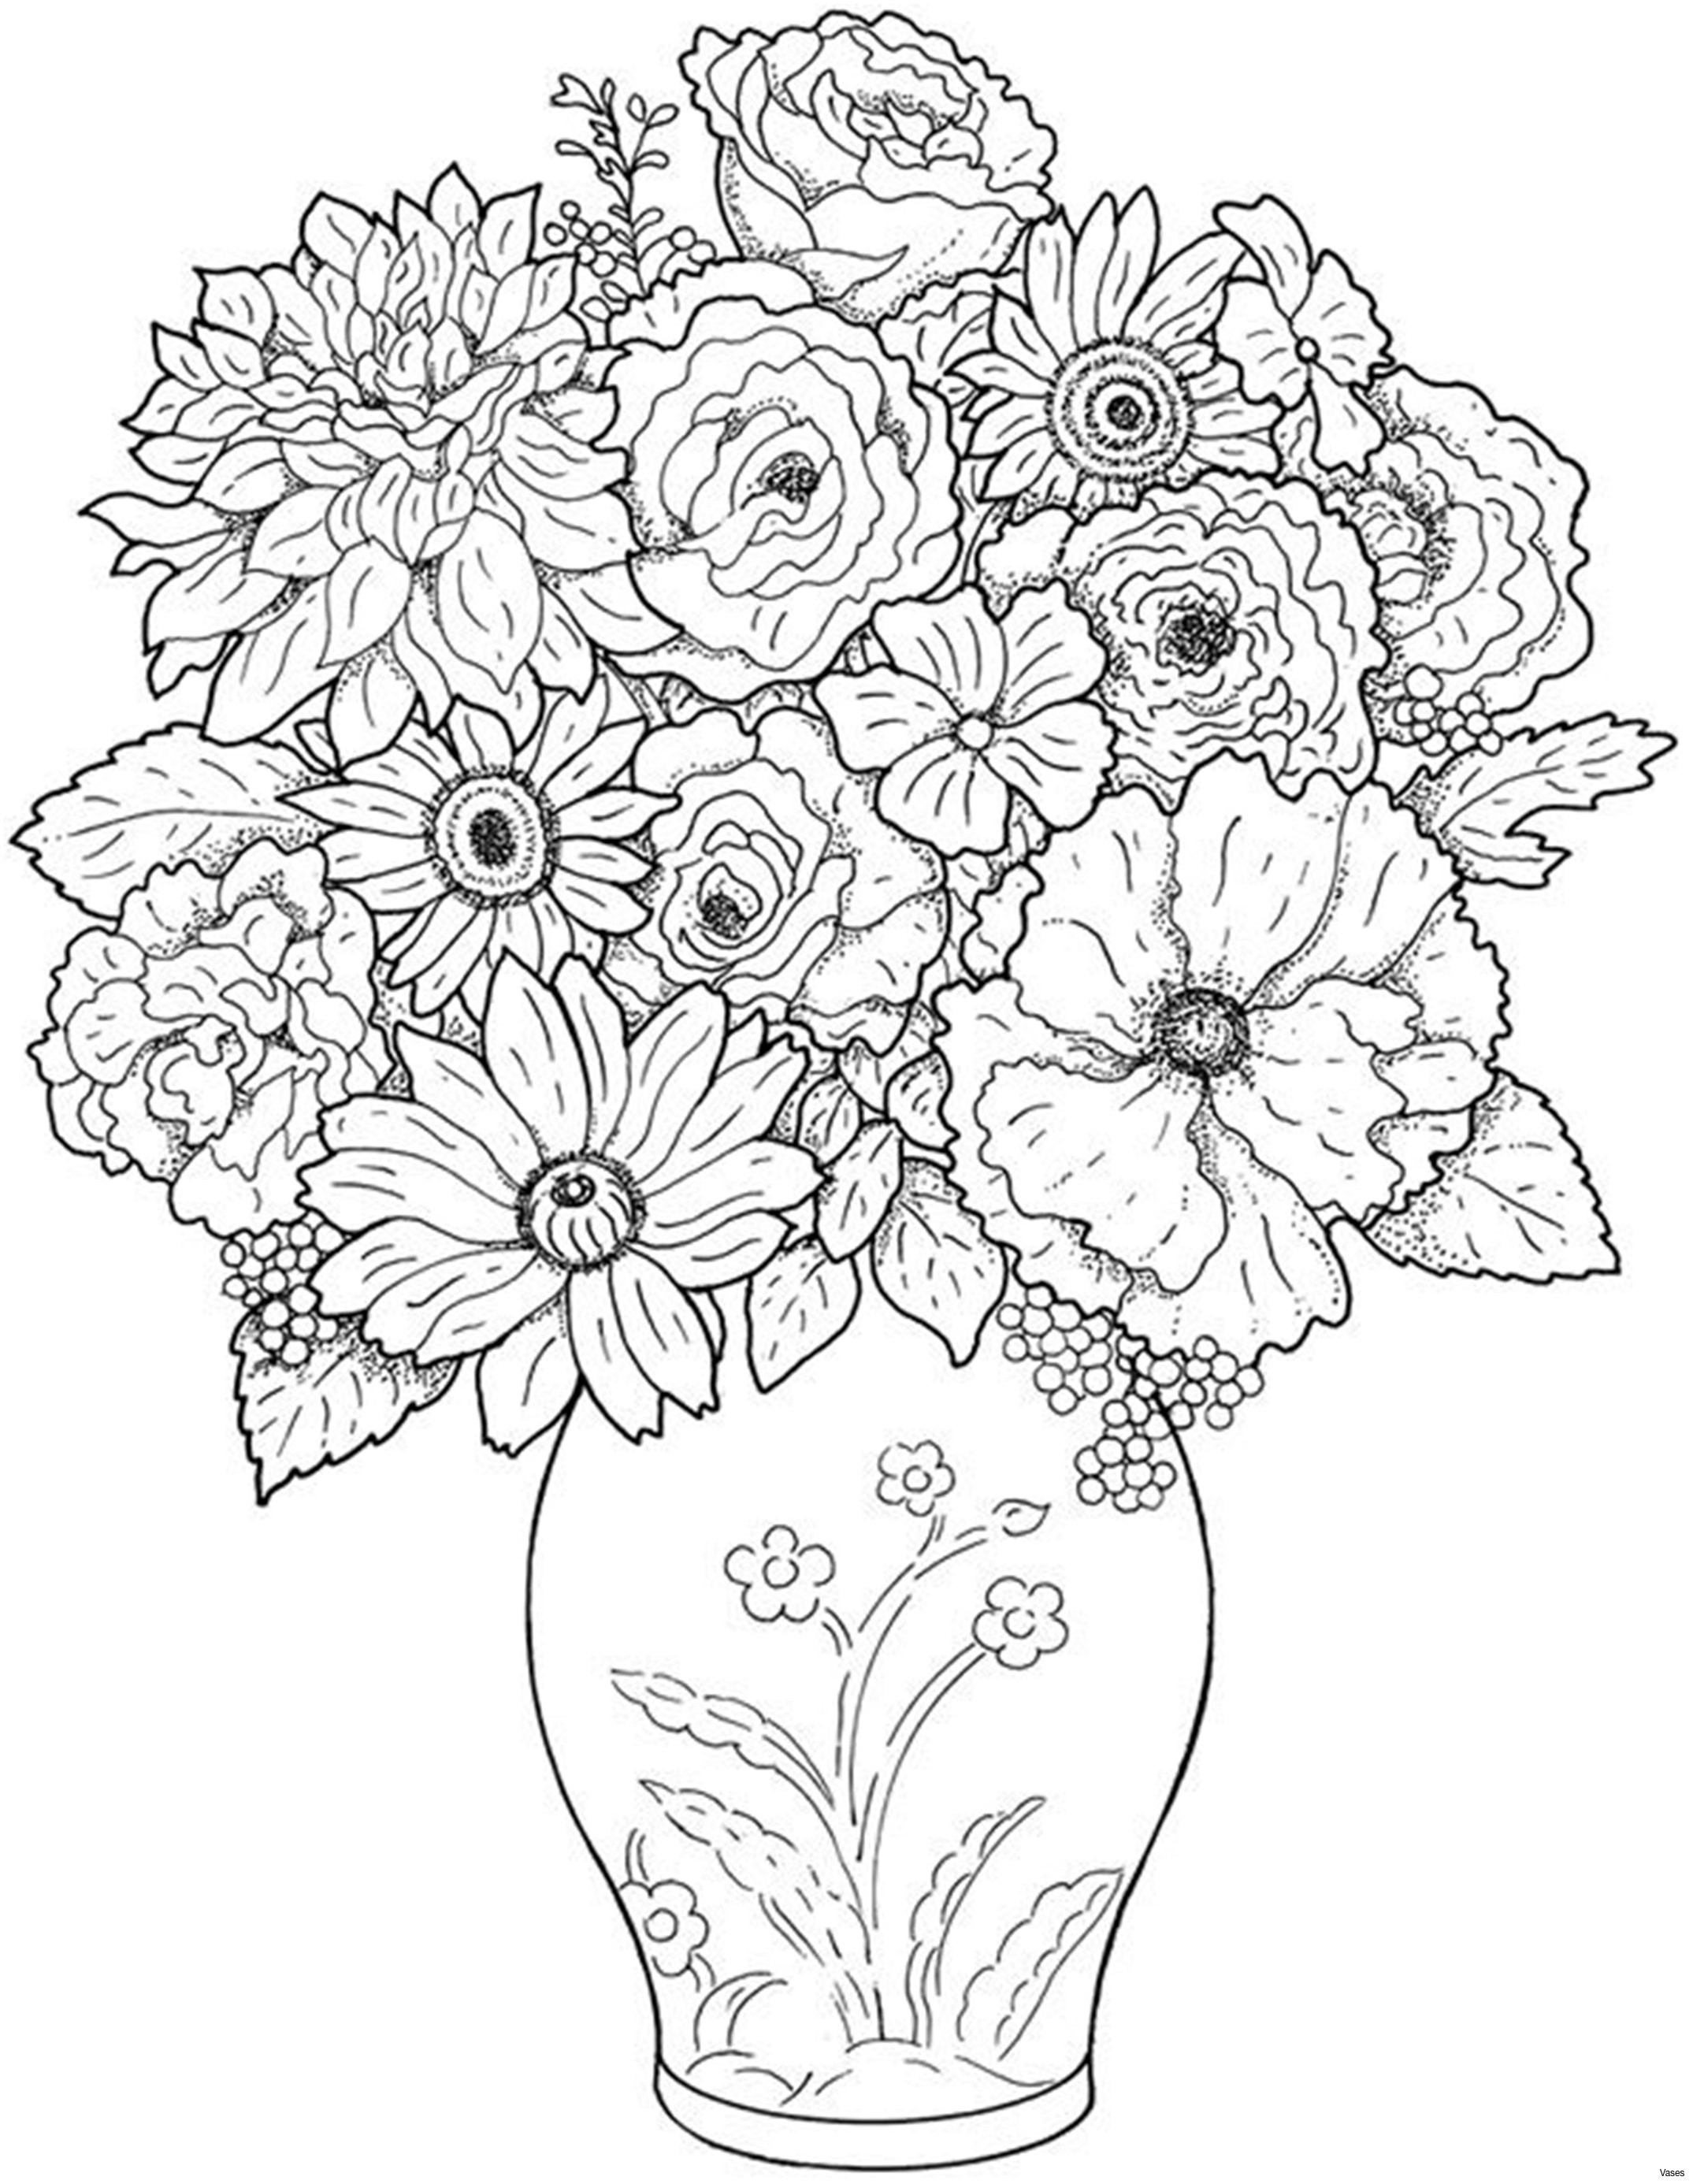 garden colouring pages flower garden coloring pages to download and print for free garden colouring pages